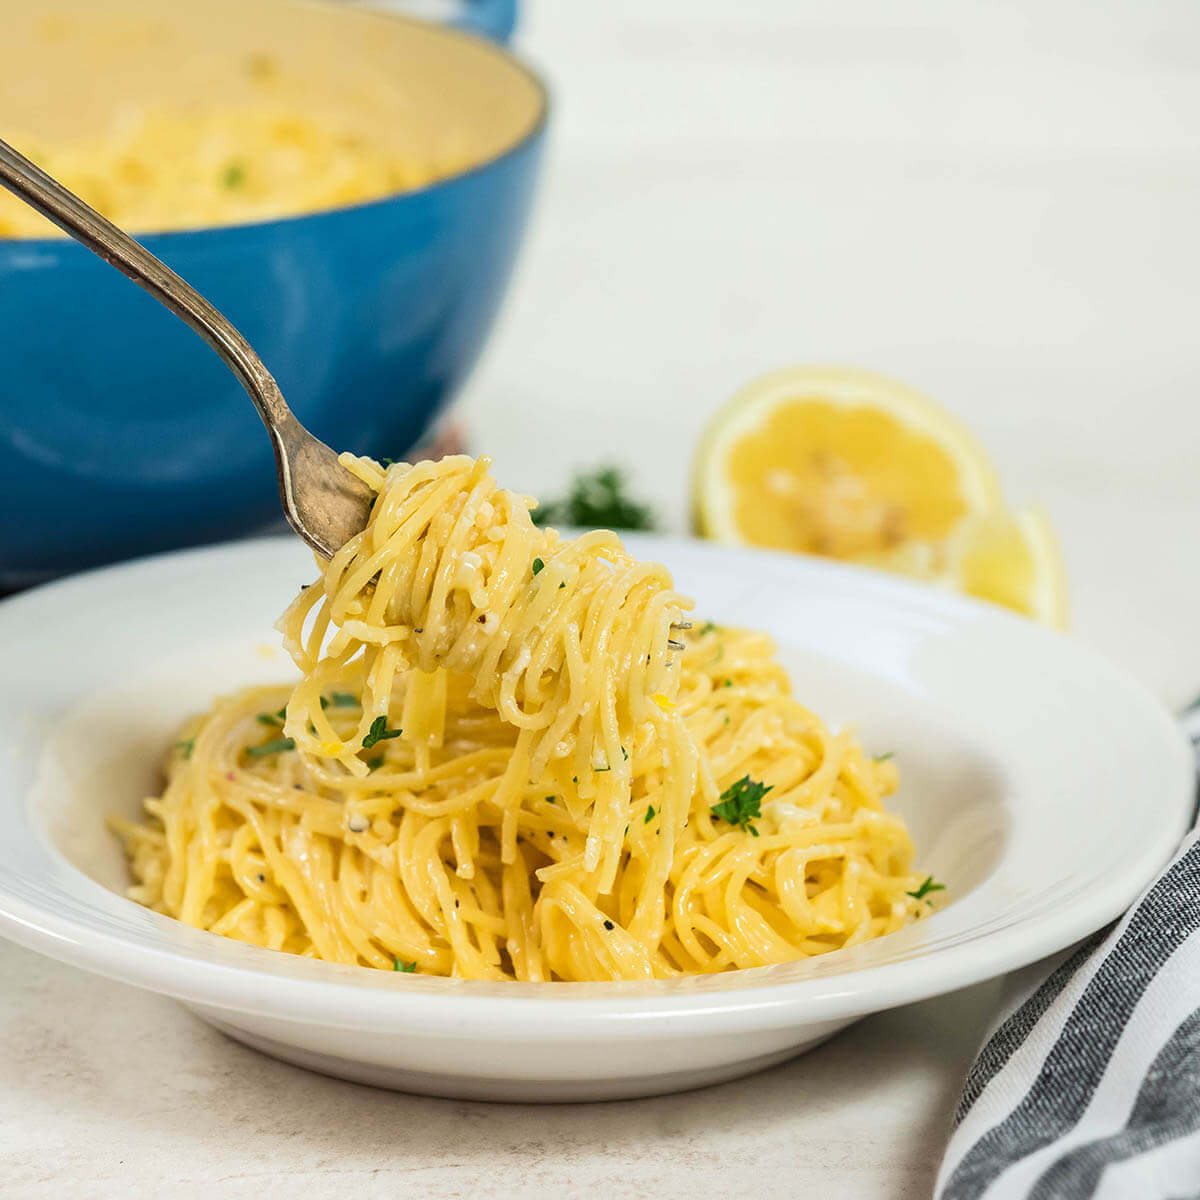 A big helping of pasta served in a white dish. A fork is twirled around a generous bite!